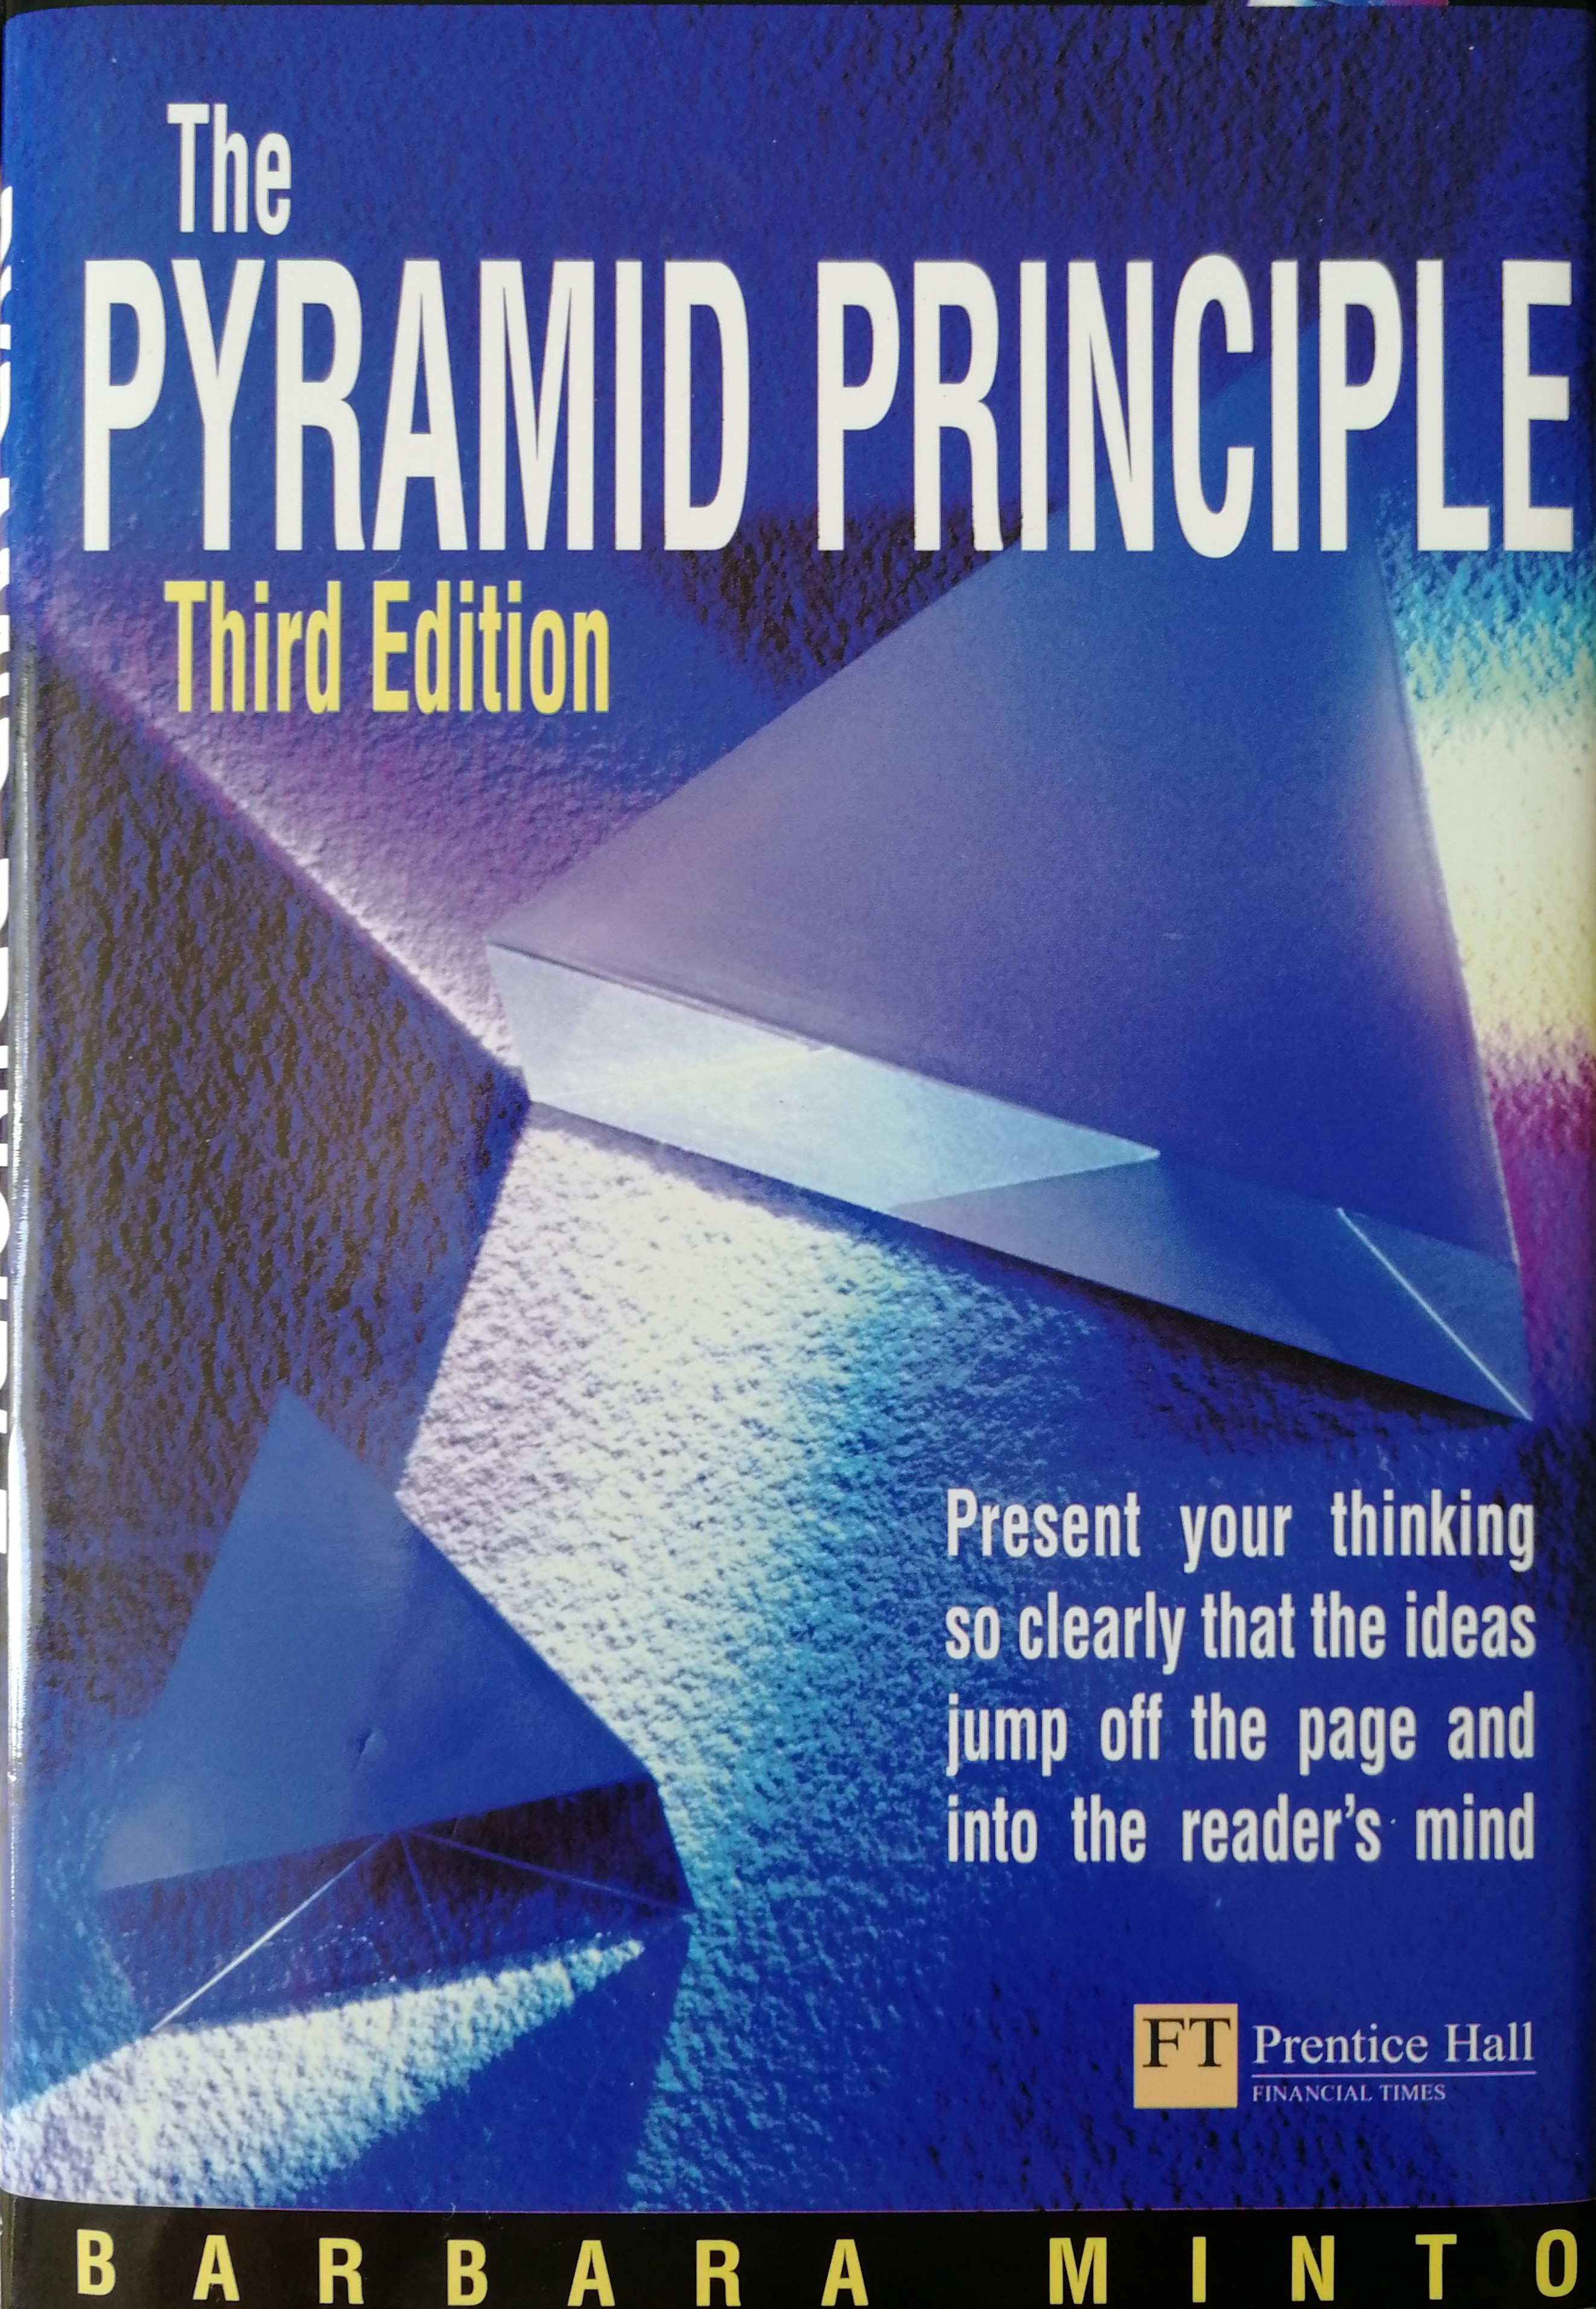 Cover of the Pyramid Principle